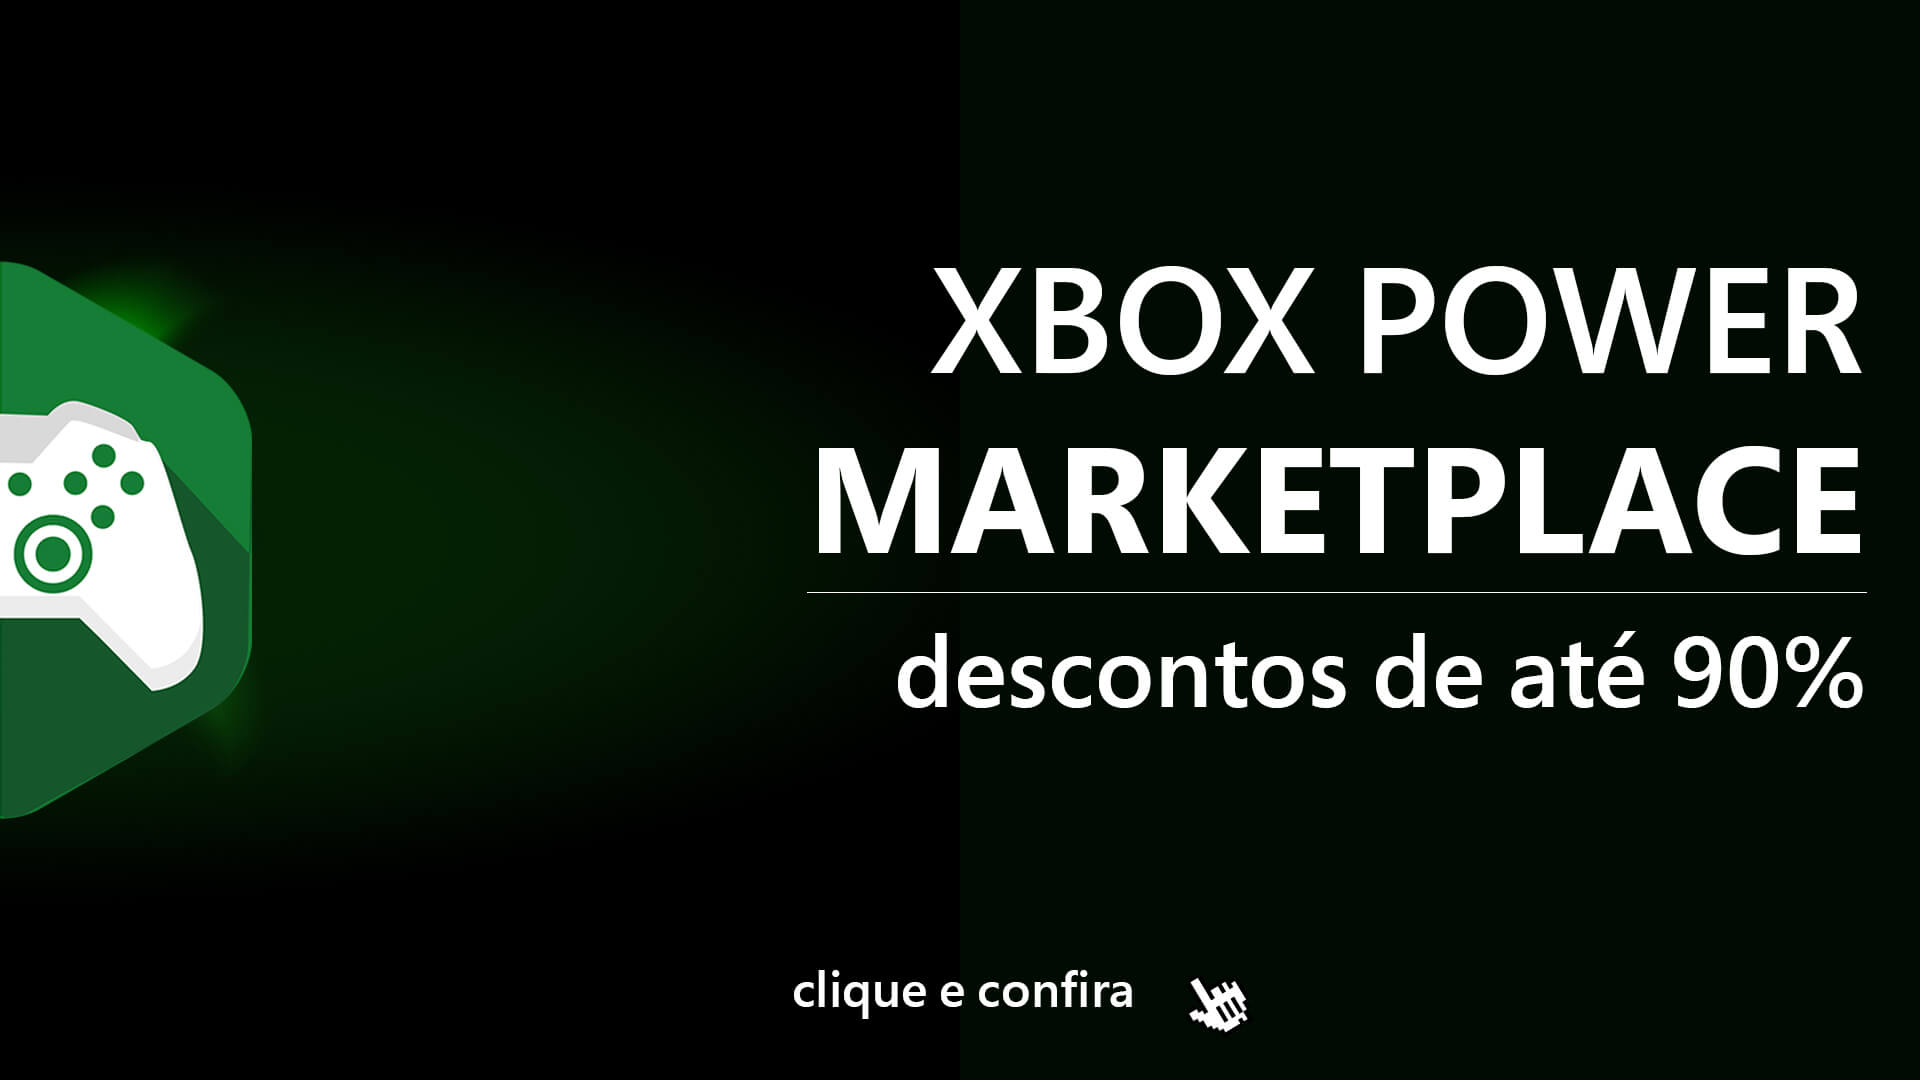 Xbox Power Marketplace